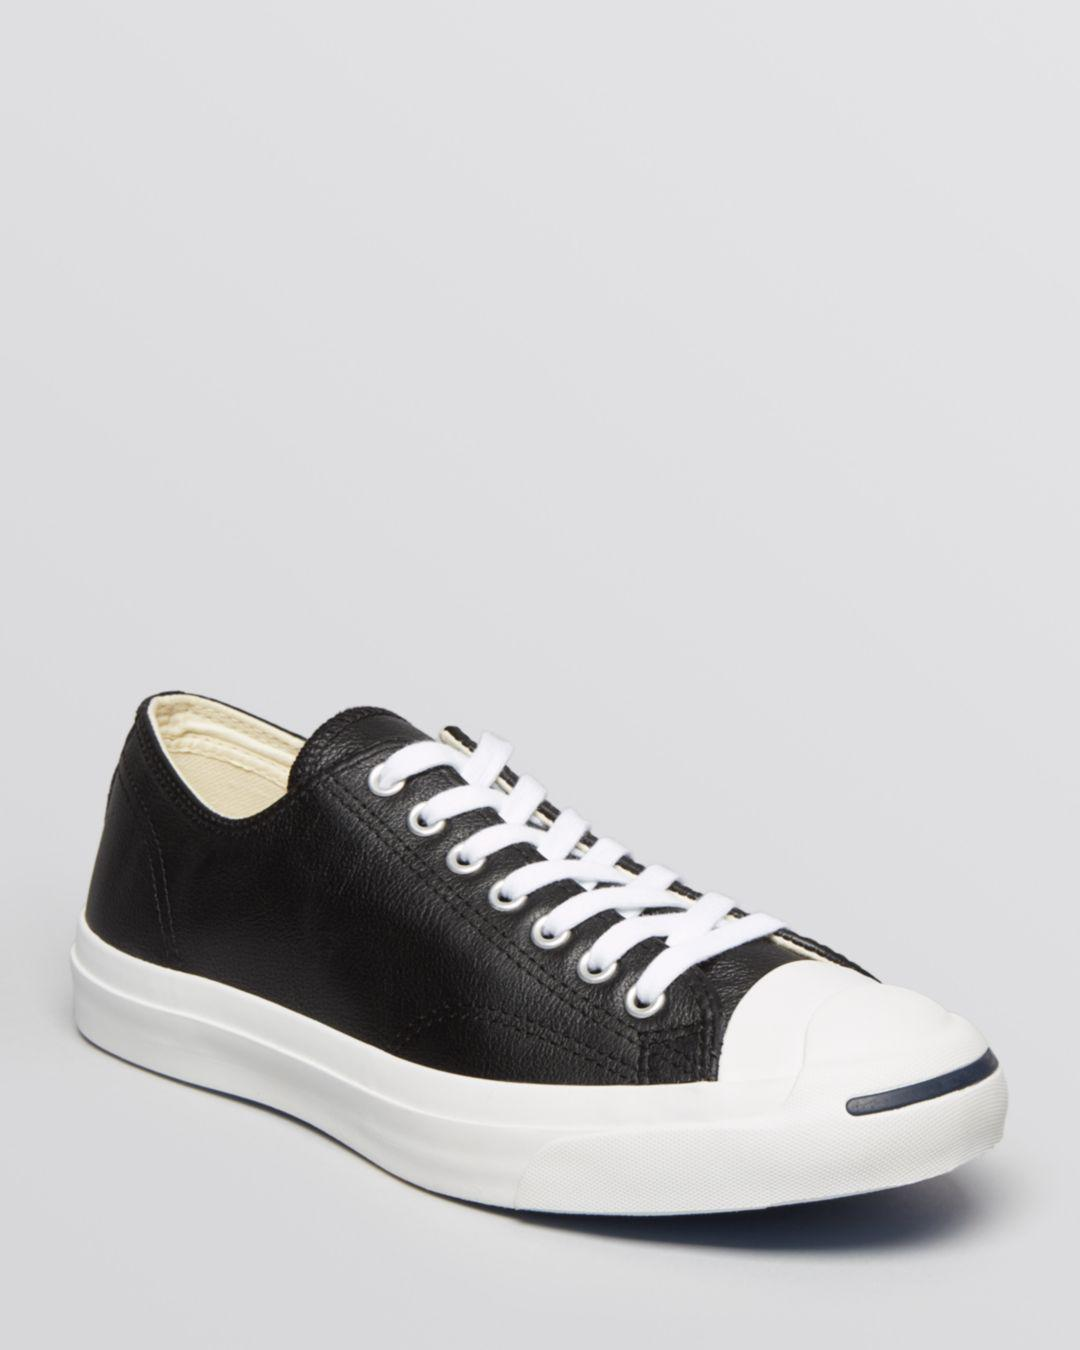 ed5c5621d6bf0c Converse Men s Jack Purcell Leather Lace Up Sneakers in White for ...